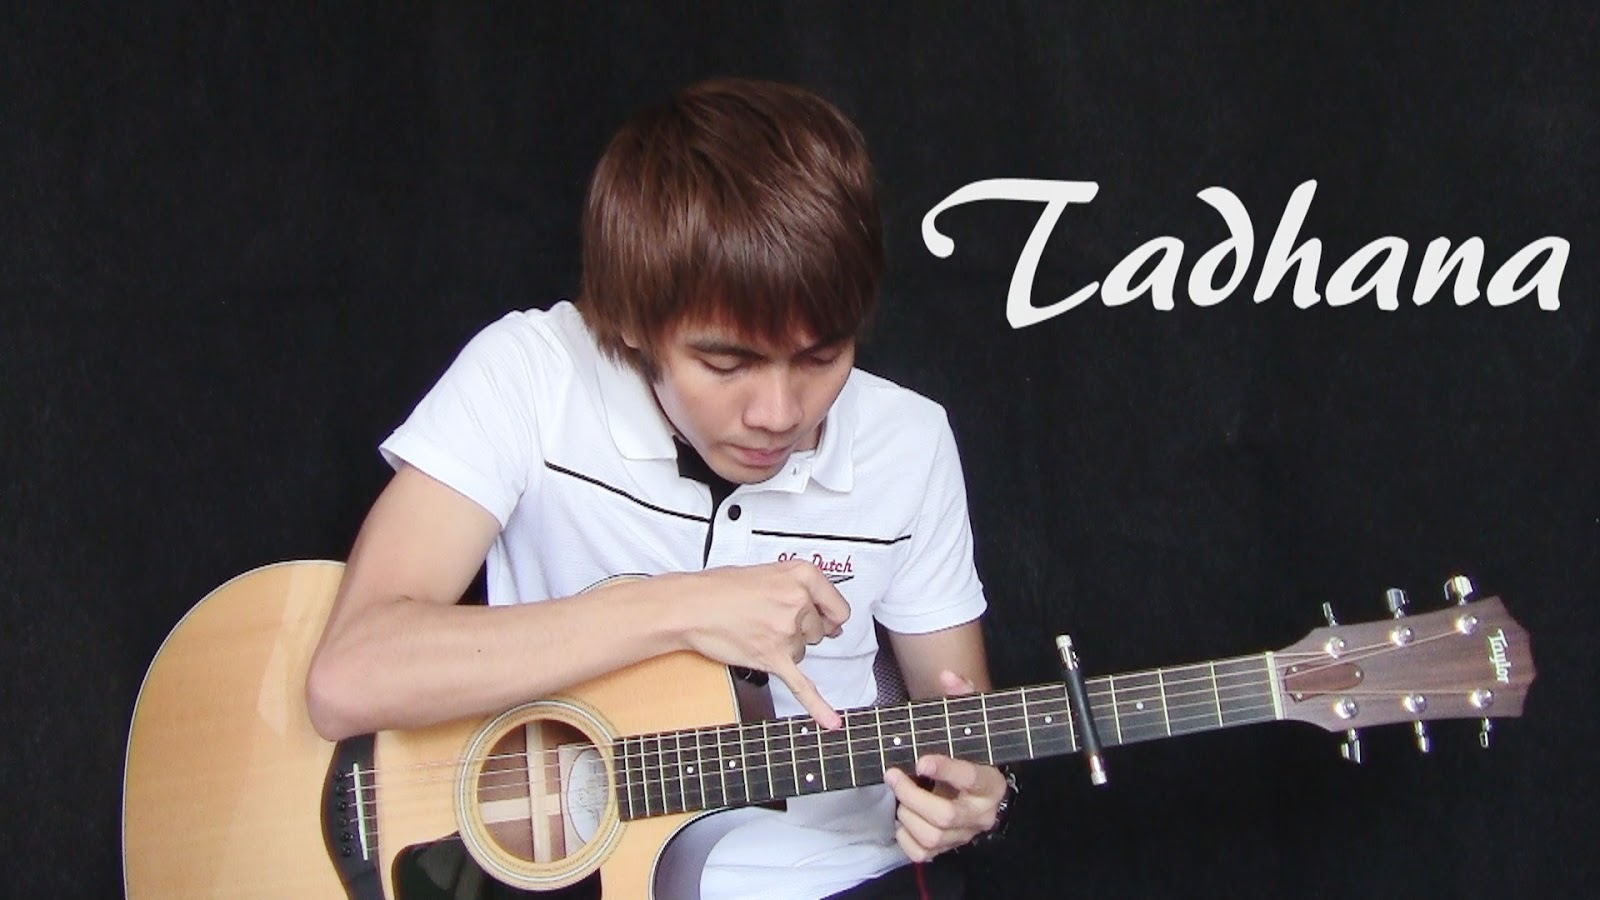 tadhana chords submited images.